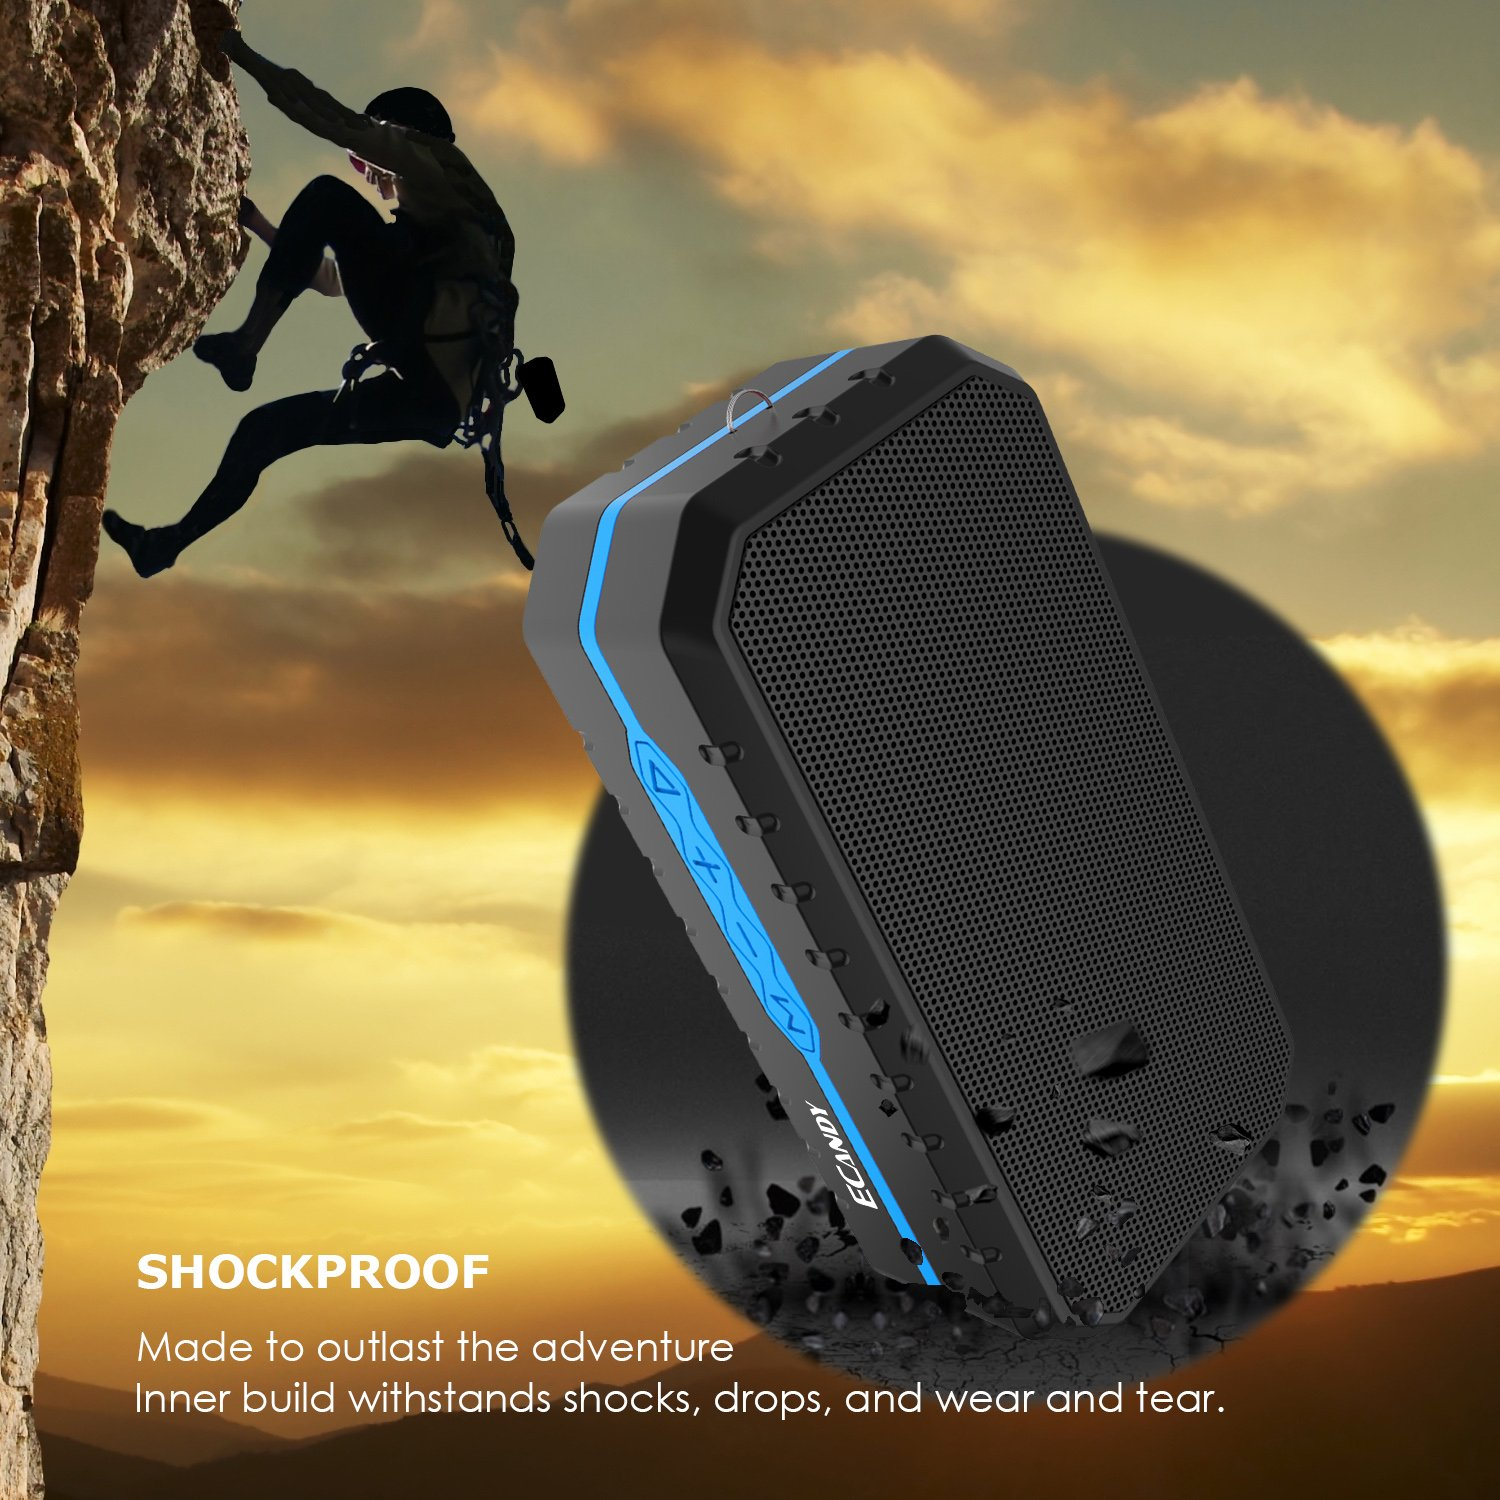 Ecandy Waterproof Wireless Speakers,Unbreak waterproof Shockproof Bluetooth Stereo Speakers,Outdoor Speakers for Climbing,Cycling, Hiking (Black/Blue)